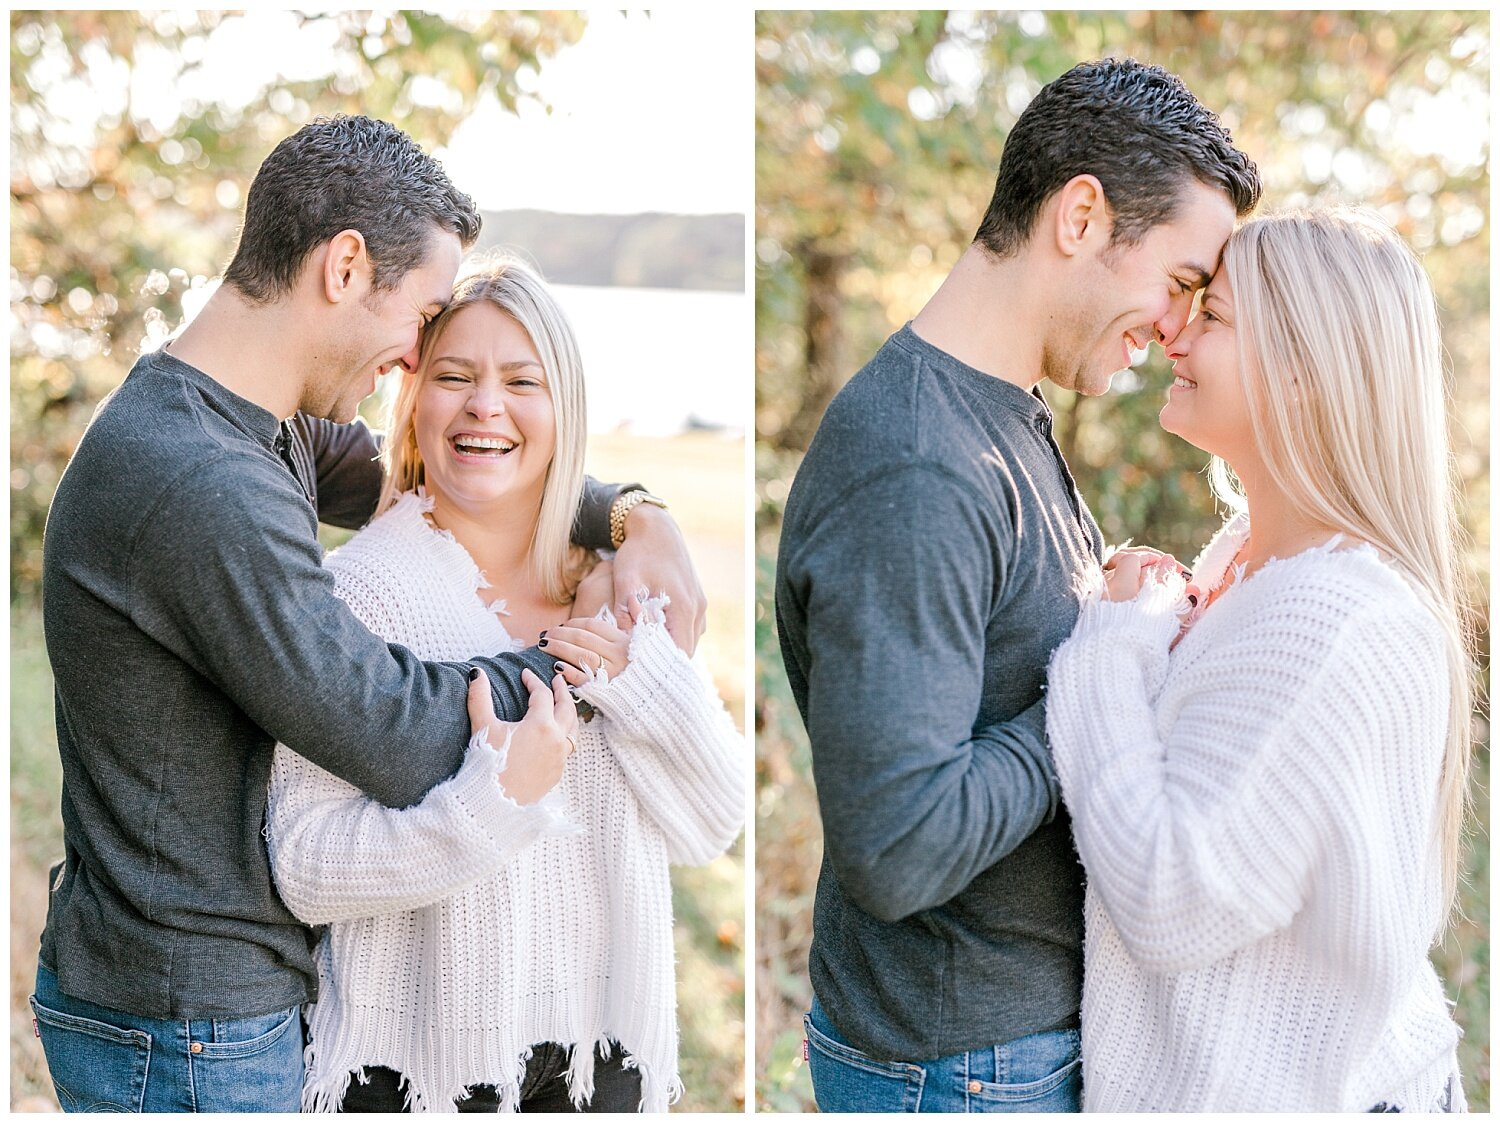 Peace Valley Park Doylestown bucks county PA fall sunrise engagement session  lehigh valley pennsylvania based wedding and lifestyle photographer Jeannie Lytle of Lytle Photography Company_0015.jpg